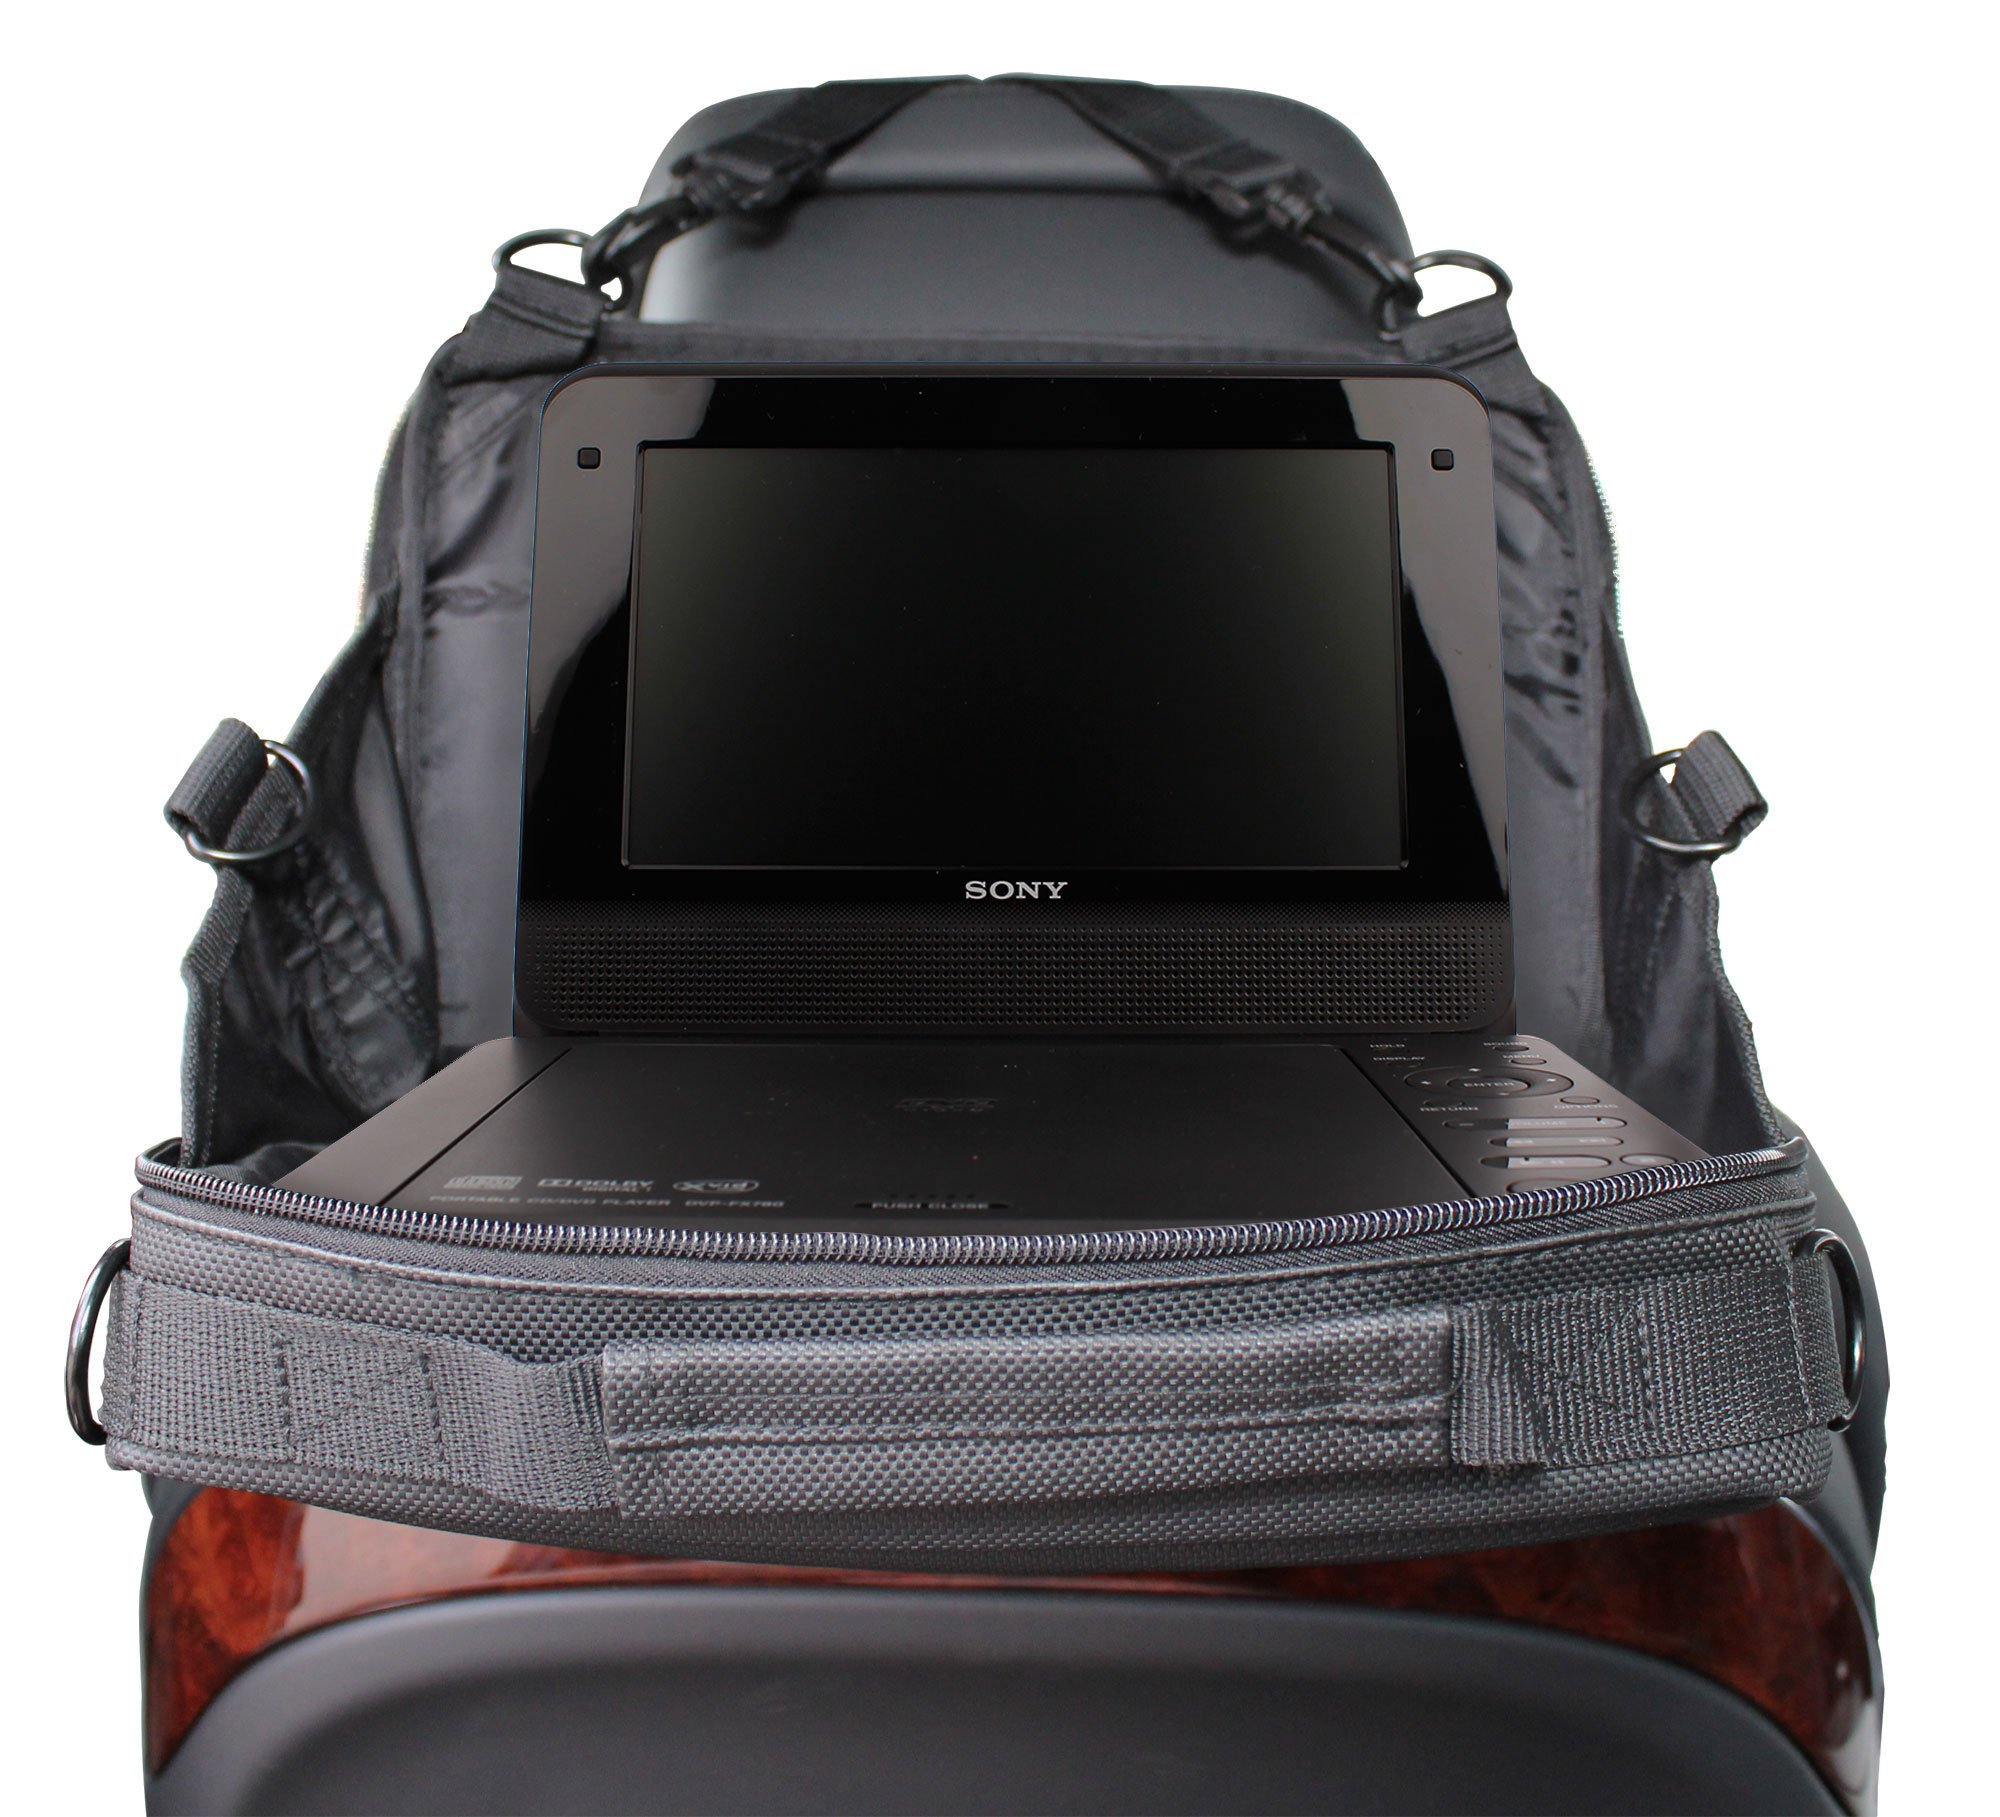 DURAGADGET 2 IN 1, 10 Inch Car Headrest Mount Holder and Storage Bag for Portable DVD Players - Compatible with Sony DVP-FX820, Philips PD9000/37 & V-Zon 7009D